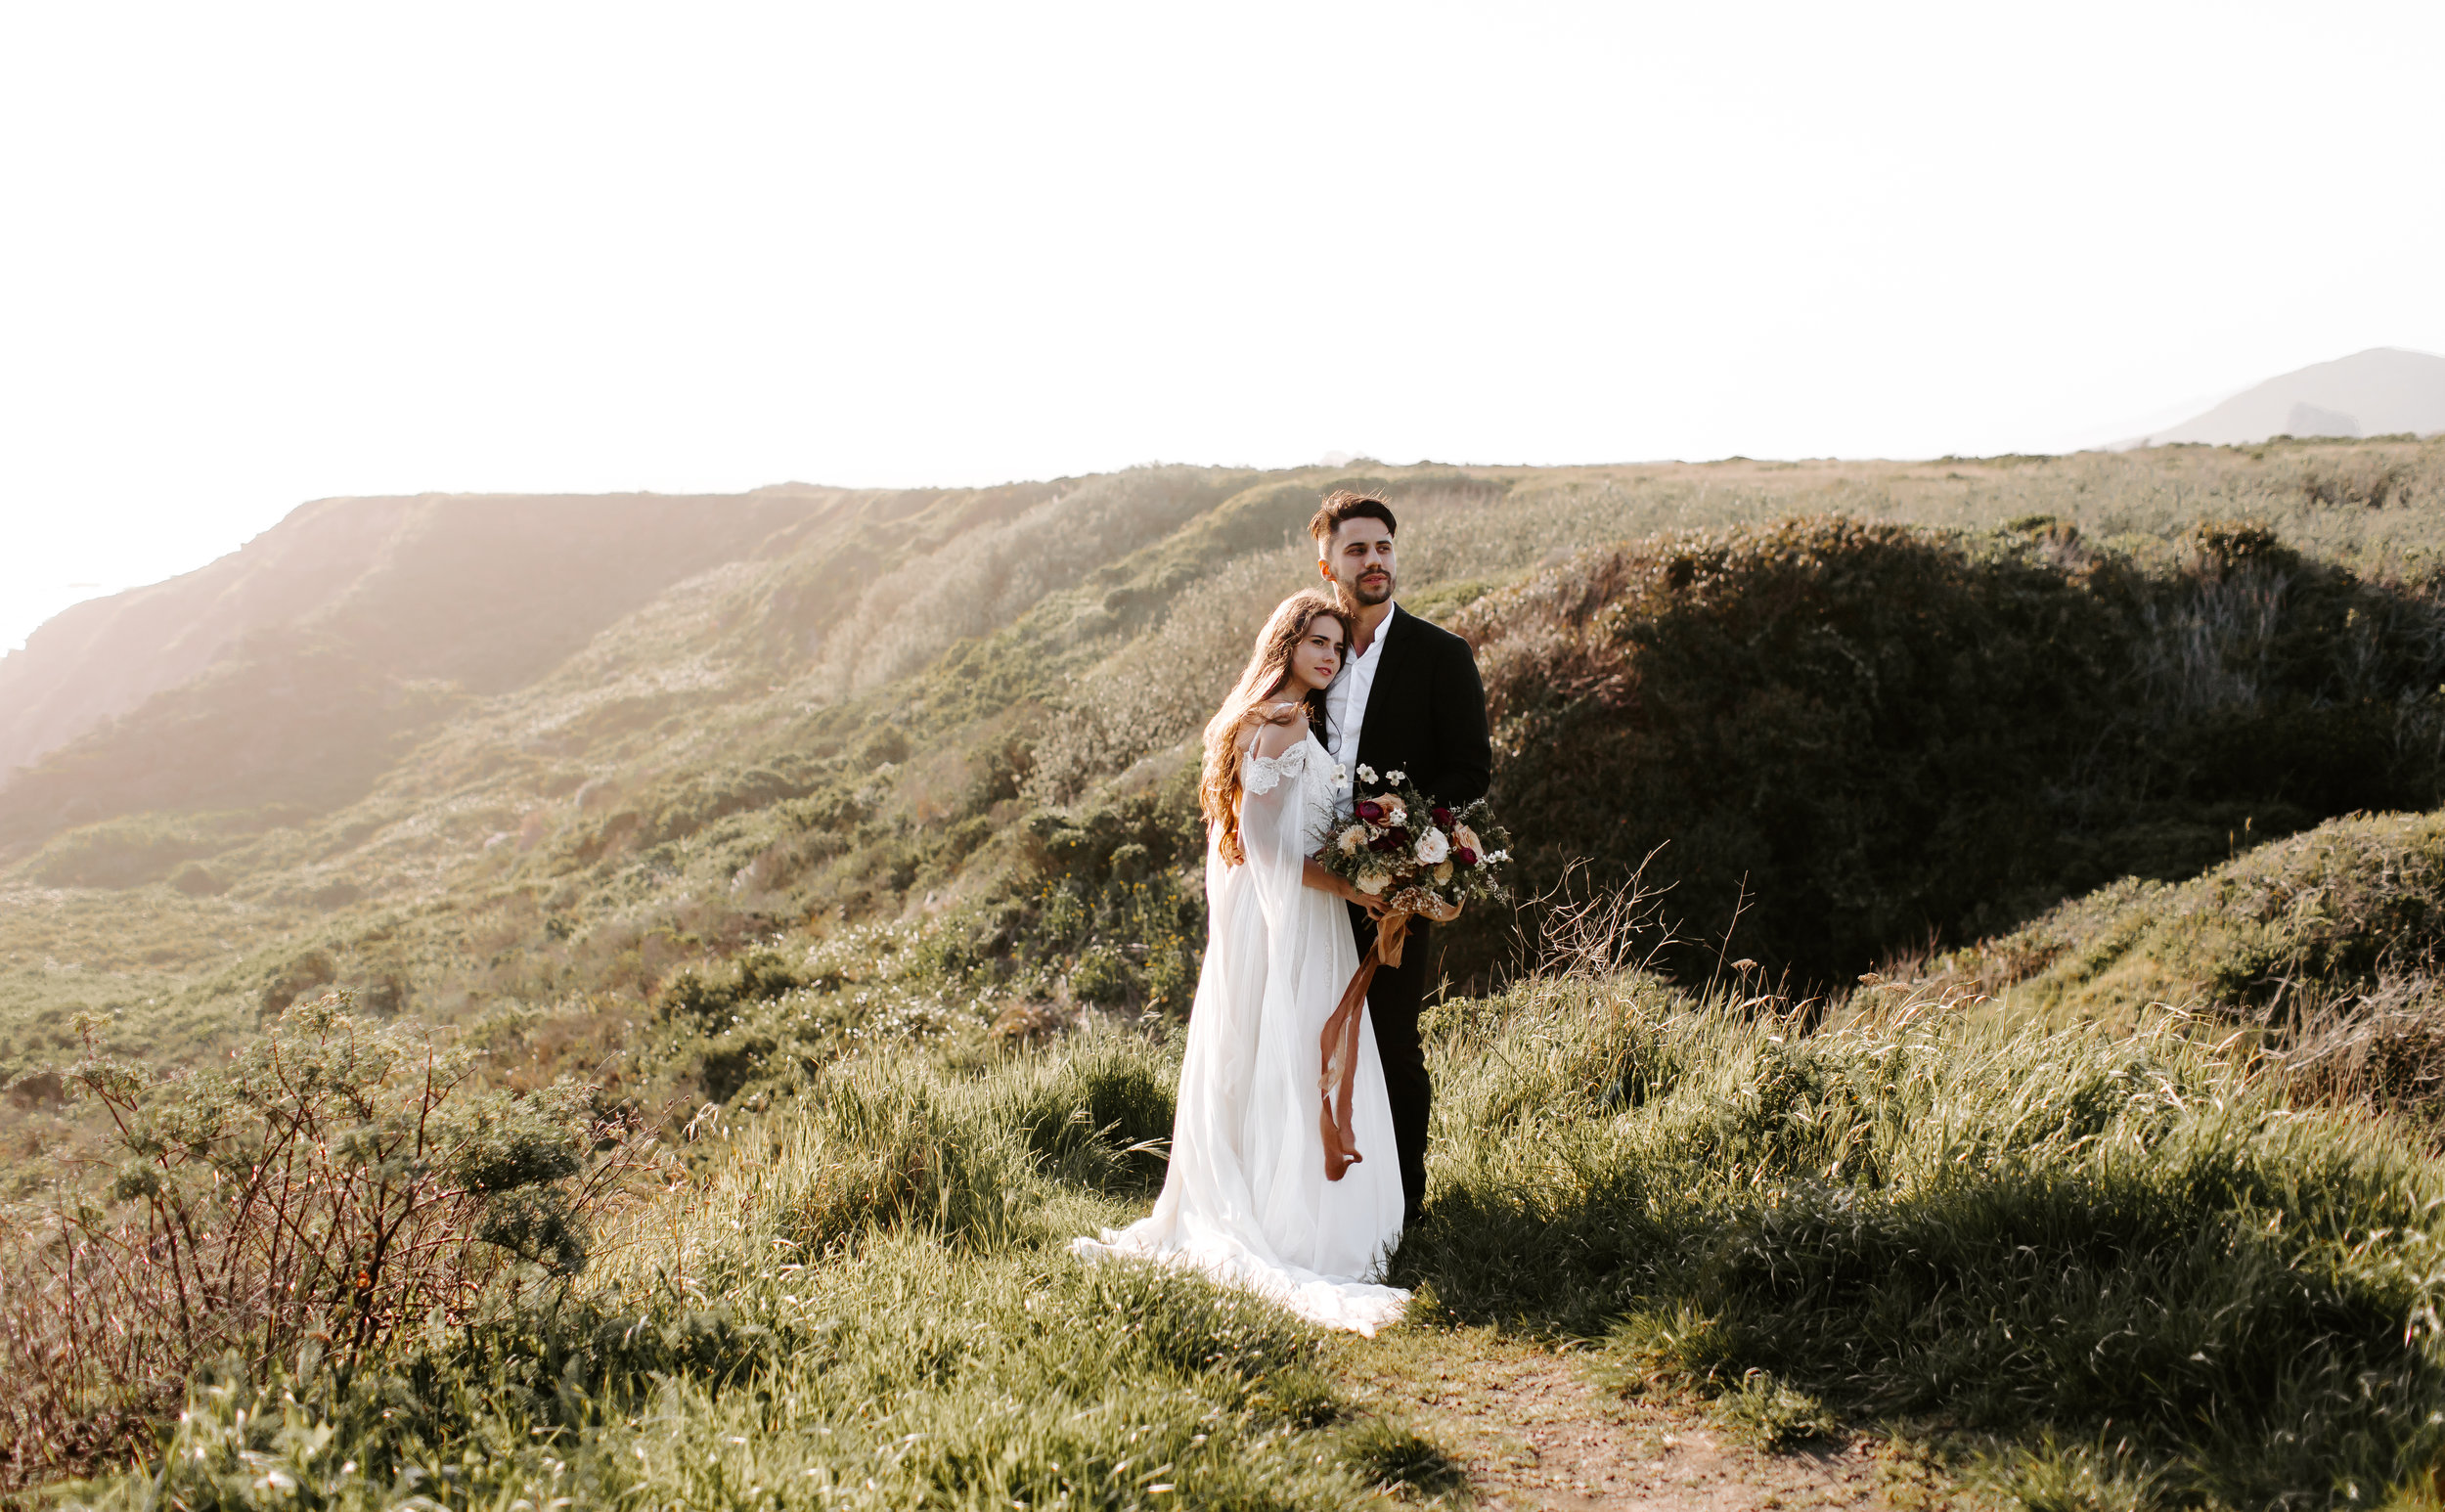 NorthernCaliforniaElopement_1.jpg